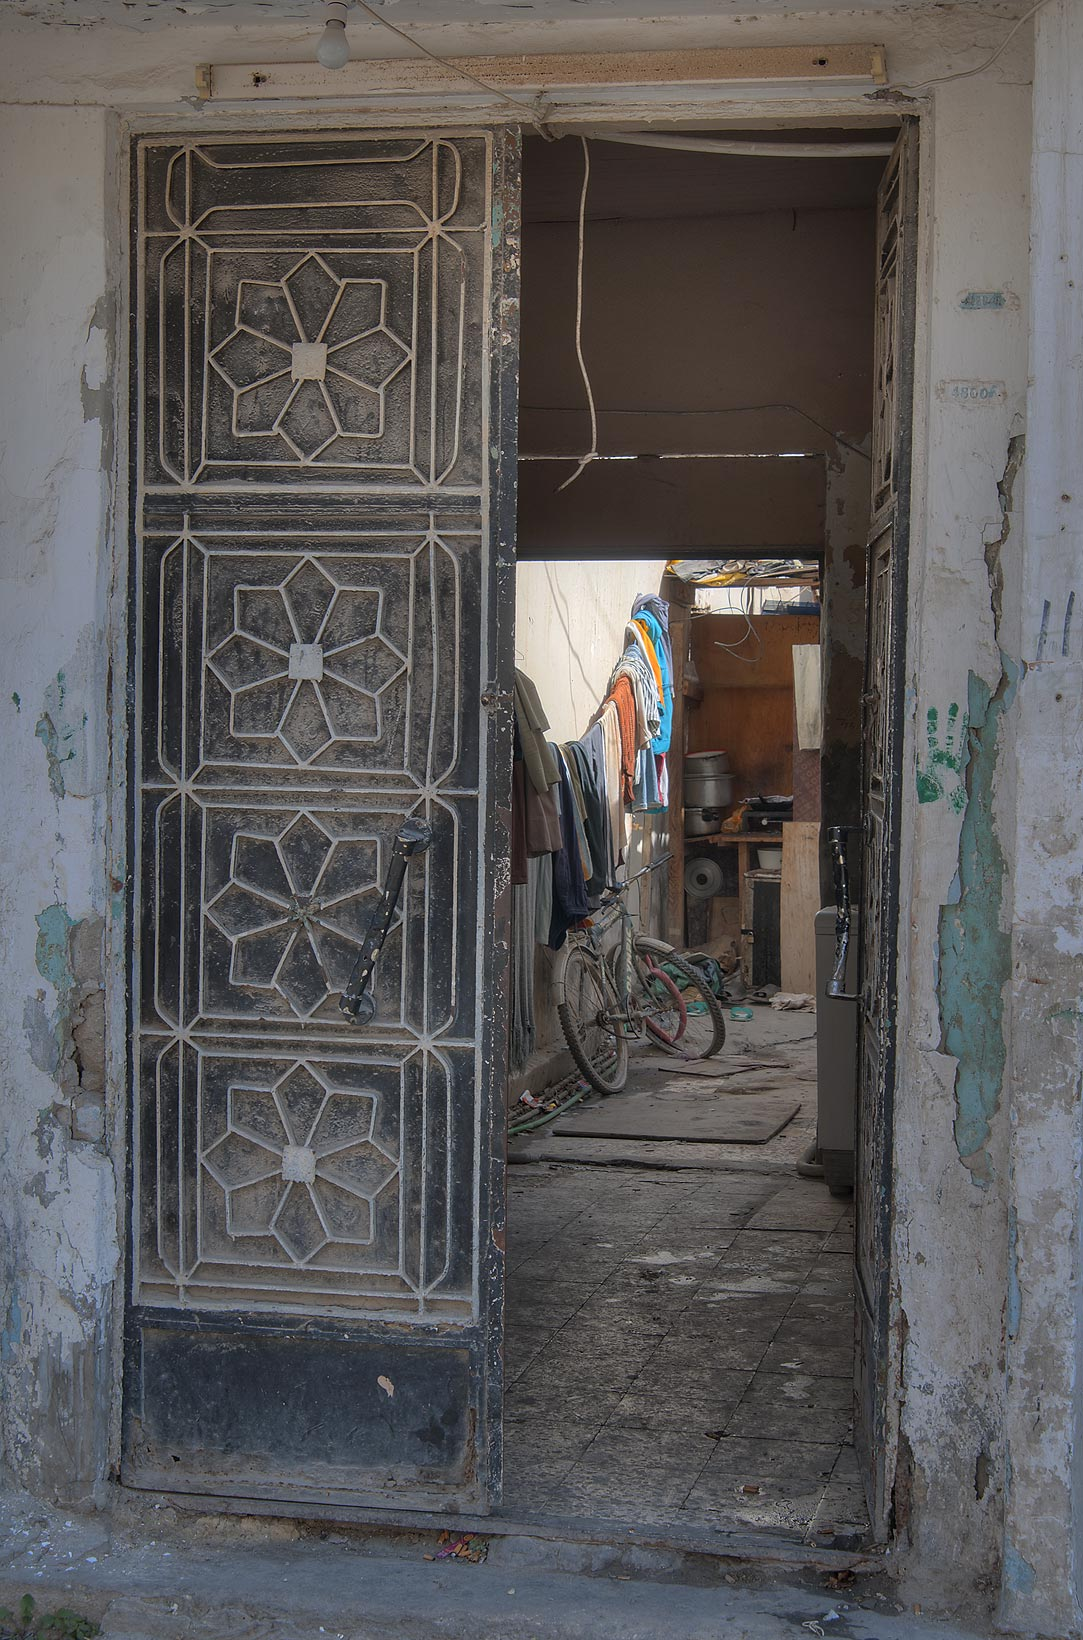 Decorated door near Tariq Bin Ziyad St. in Old Ghanam area. Doha, Qatar